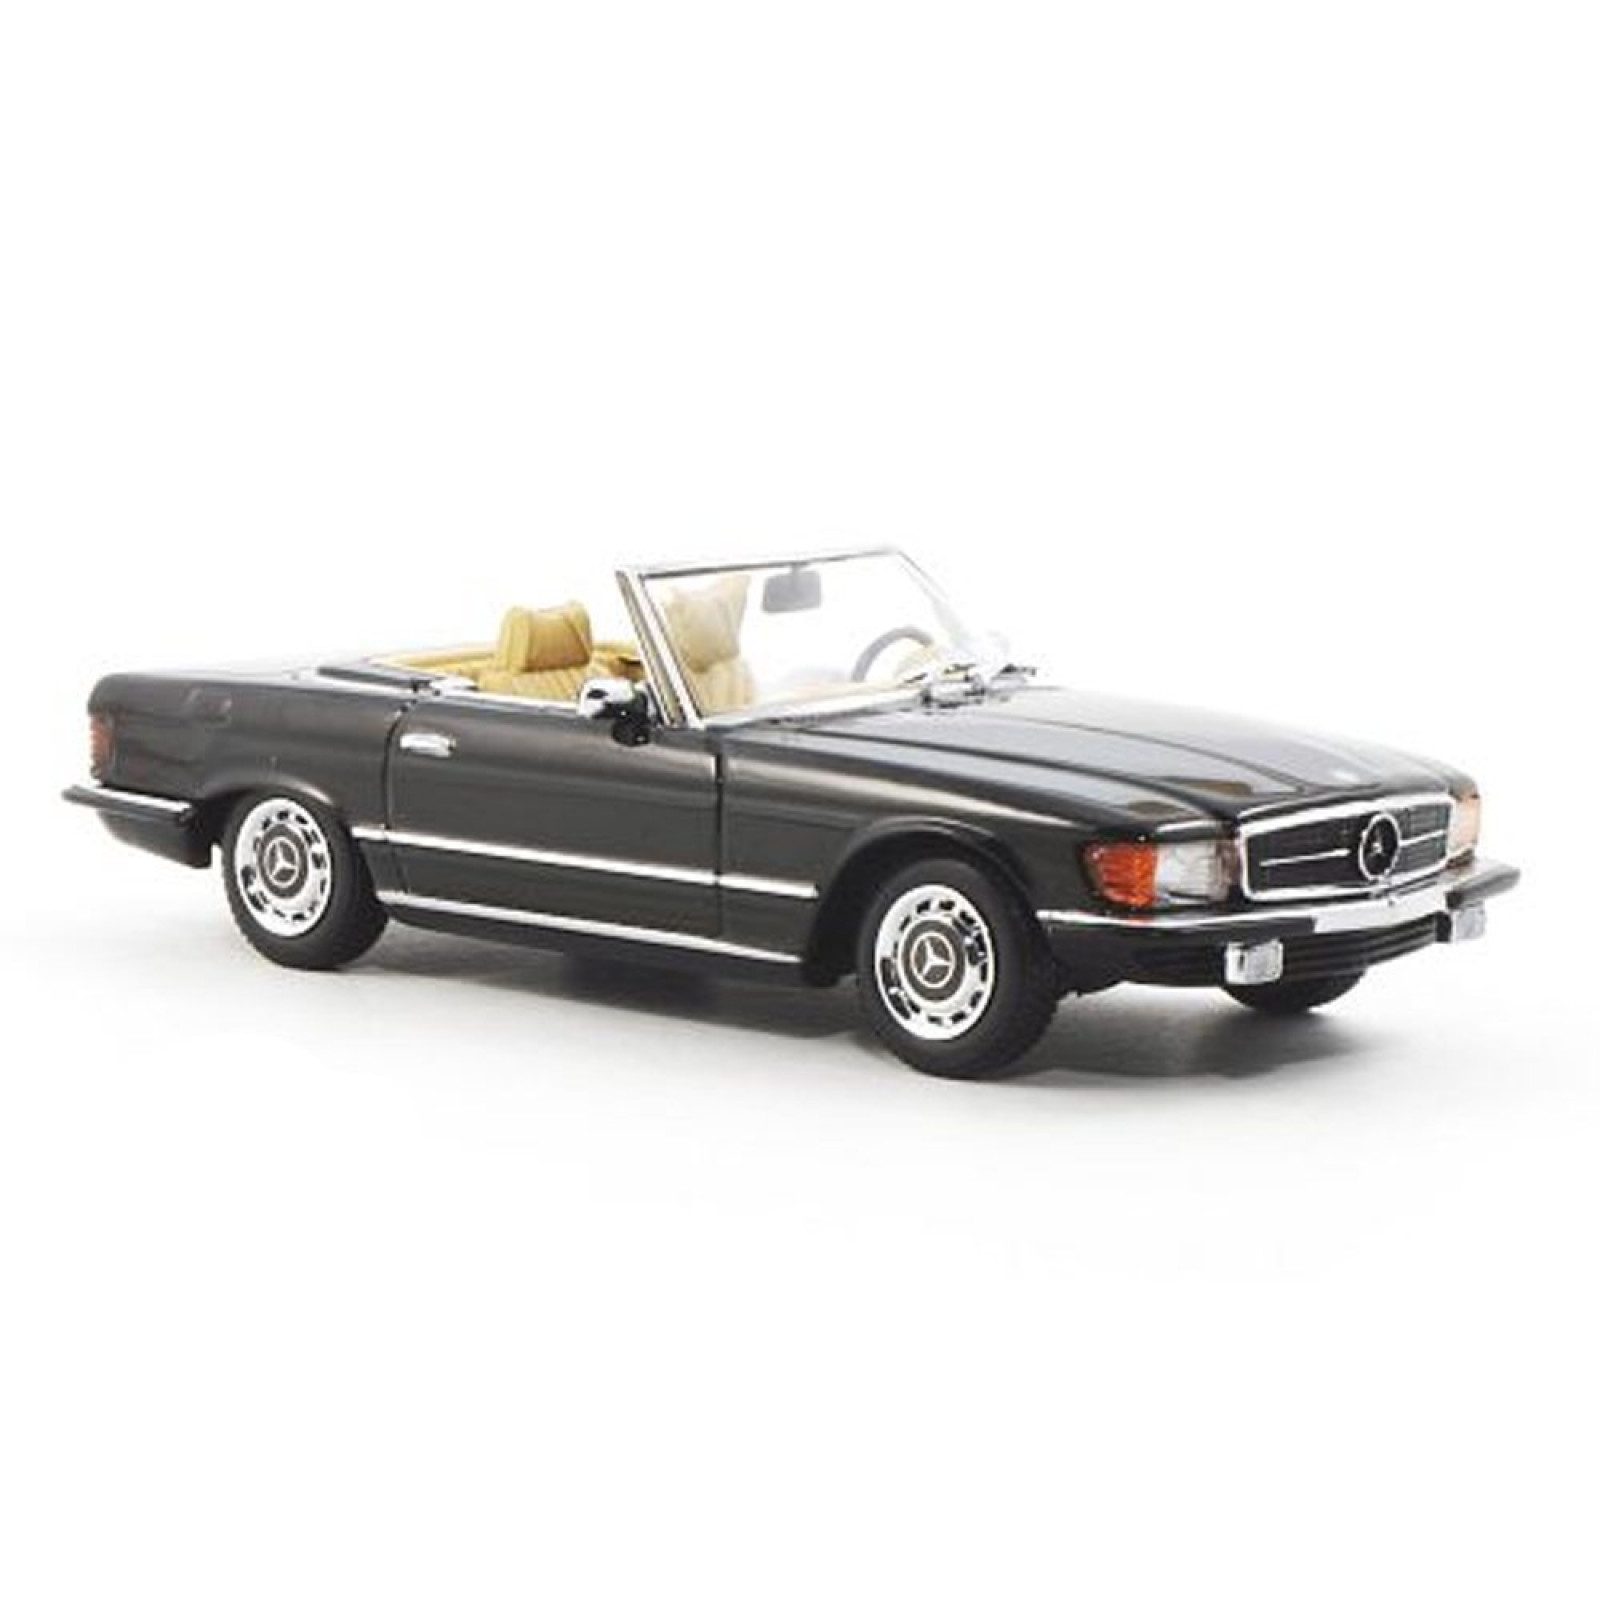 Mercedes benz 1971 39 85 107 350sl 1 43 scale diecast model for Diecast mercedes benz